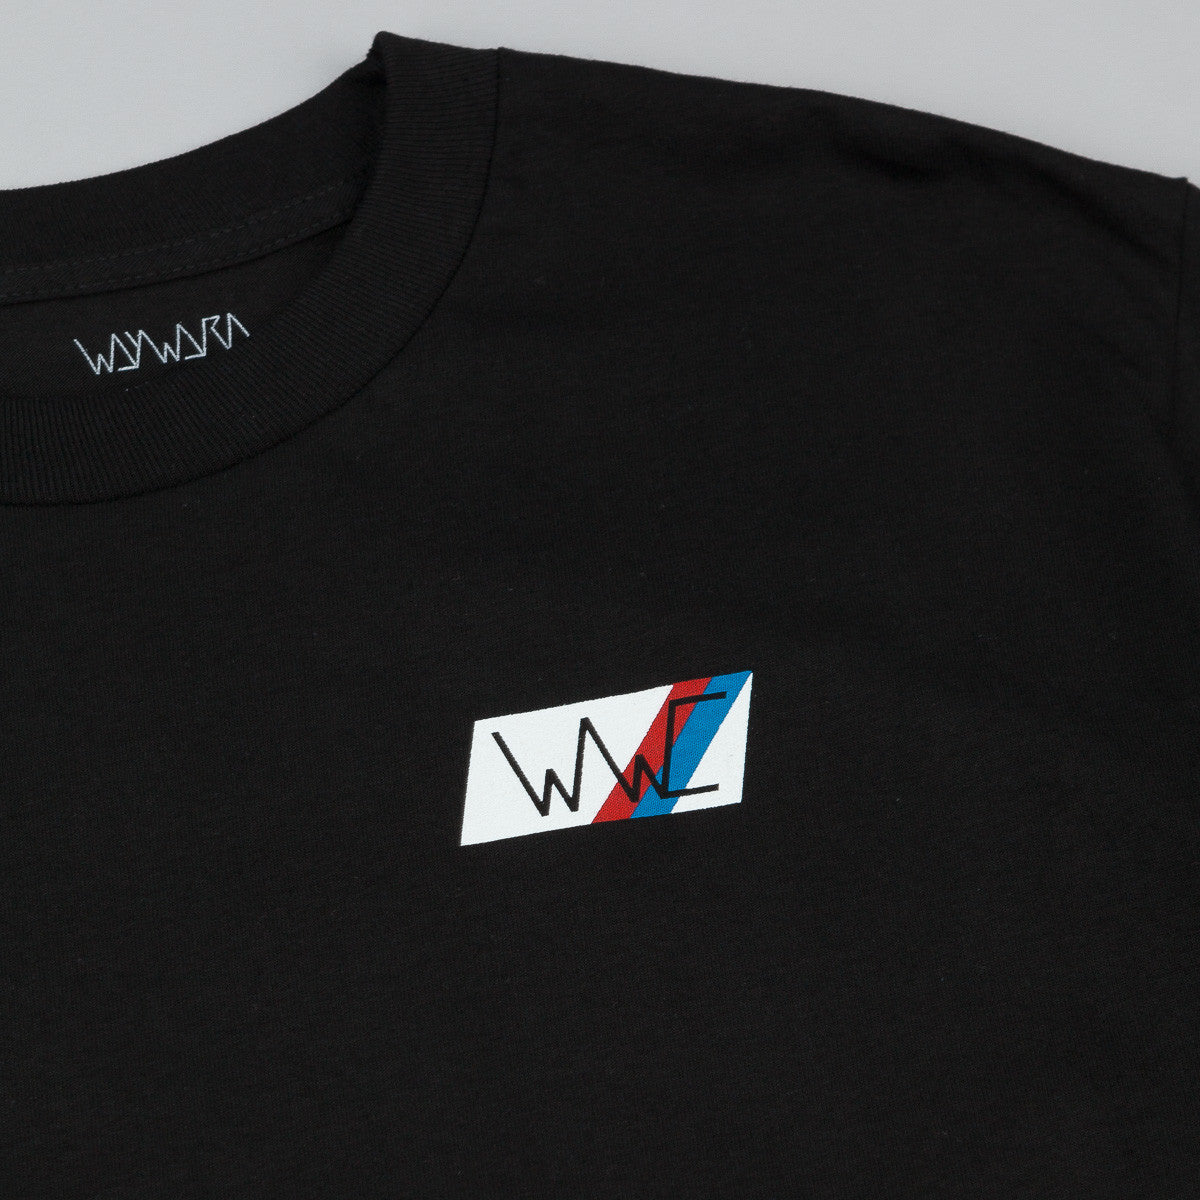 Wayward Signature Logo T-Shirt - Black